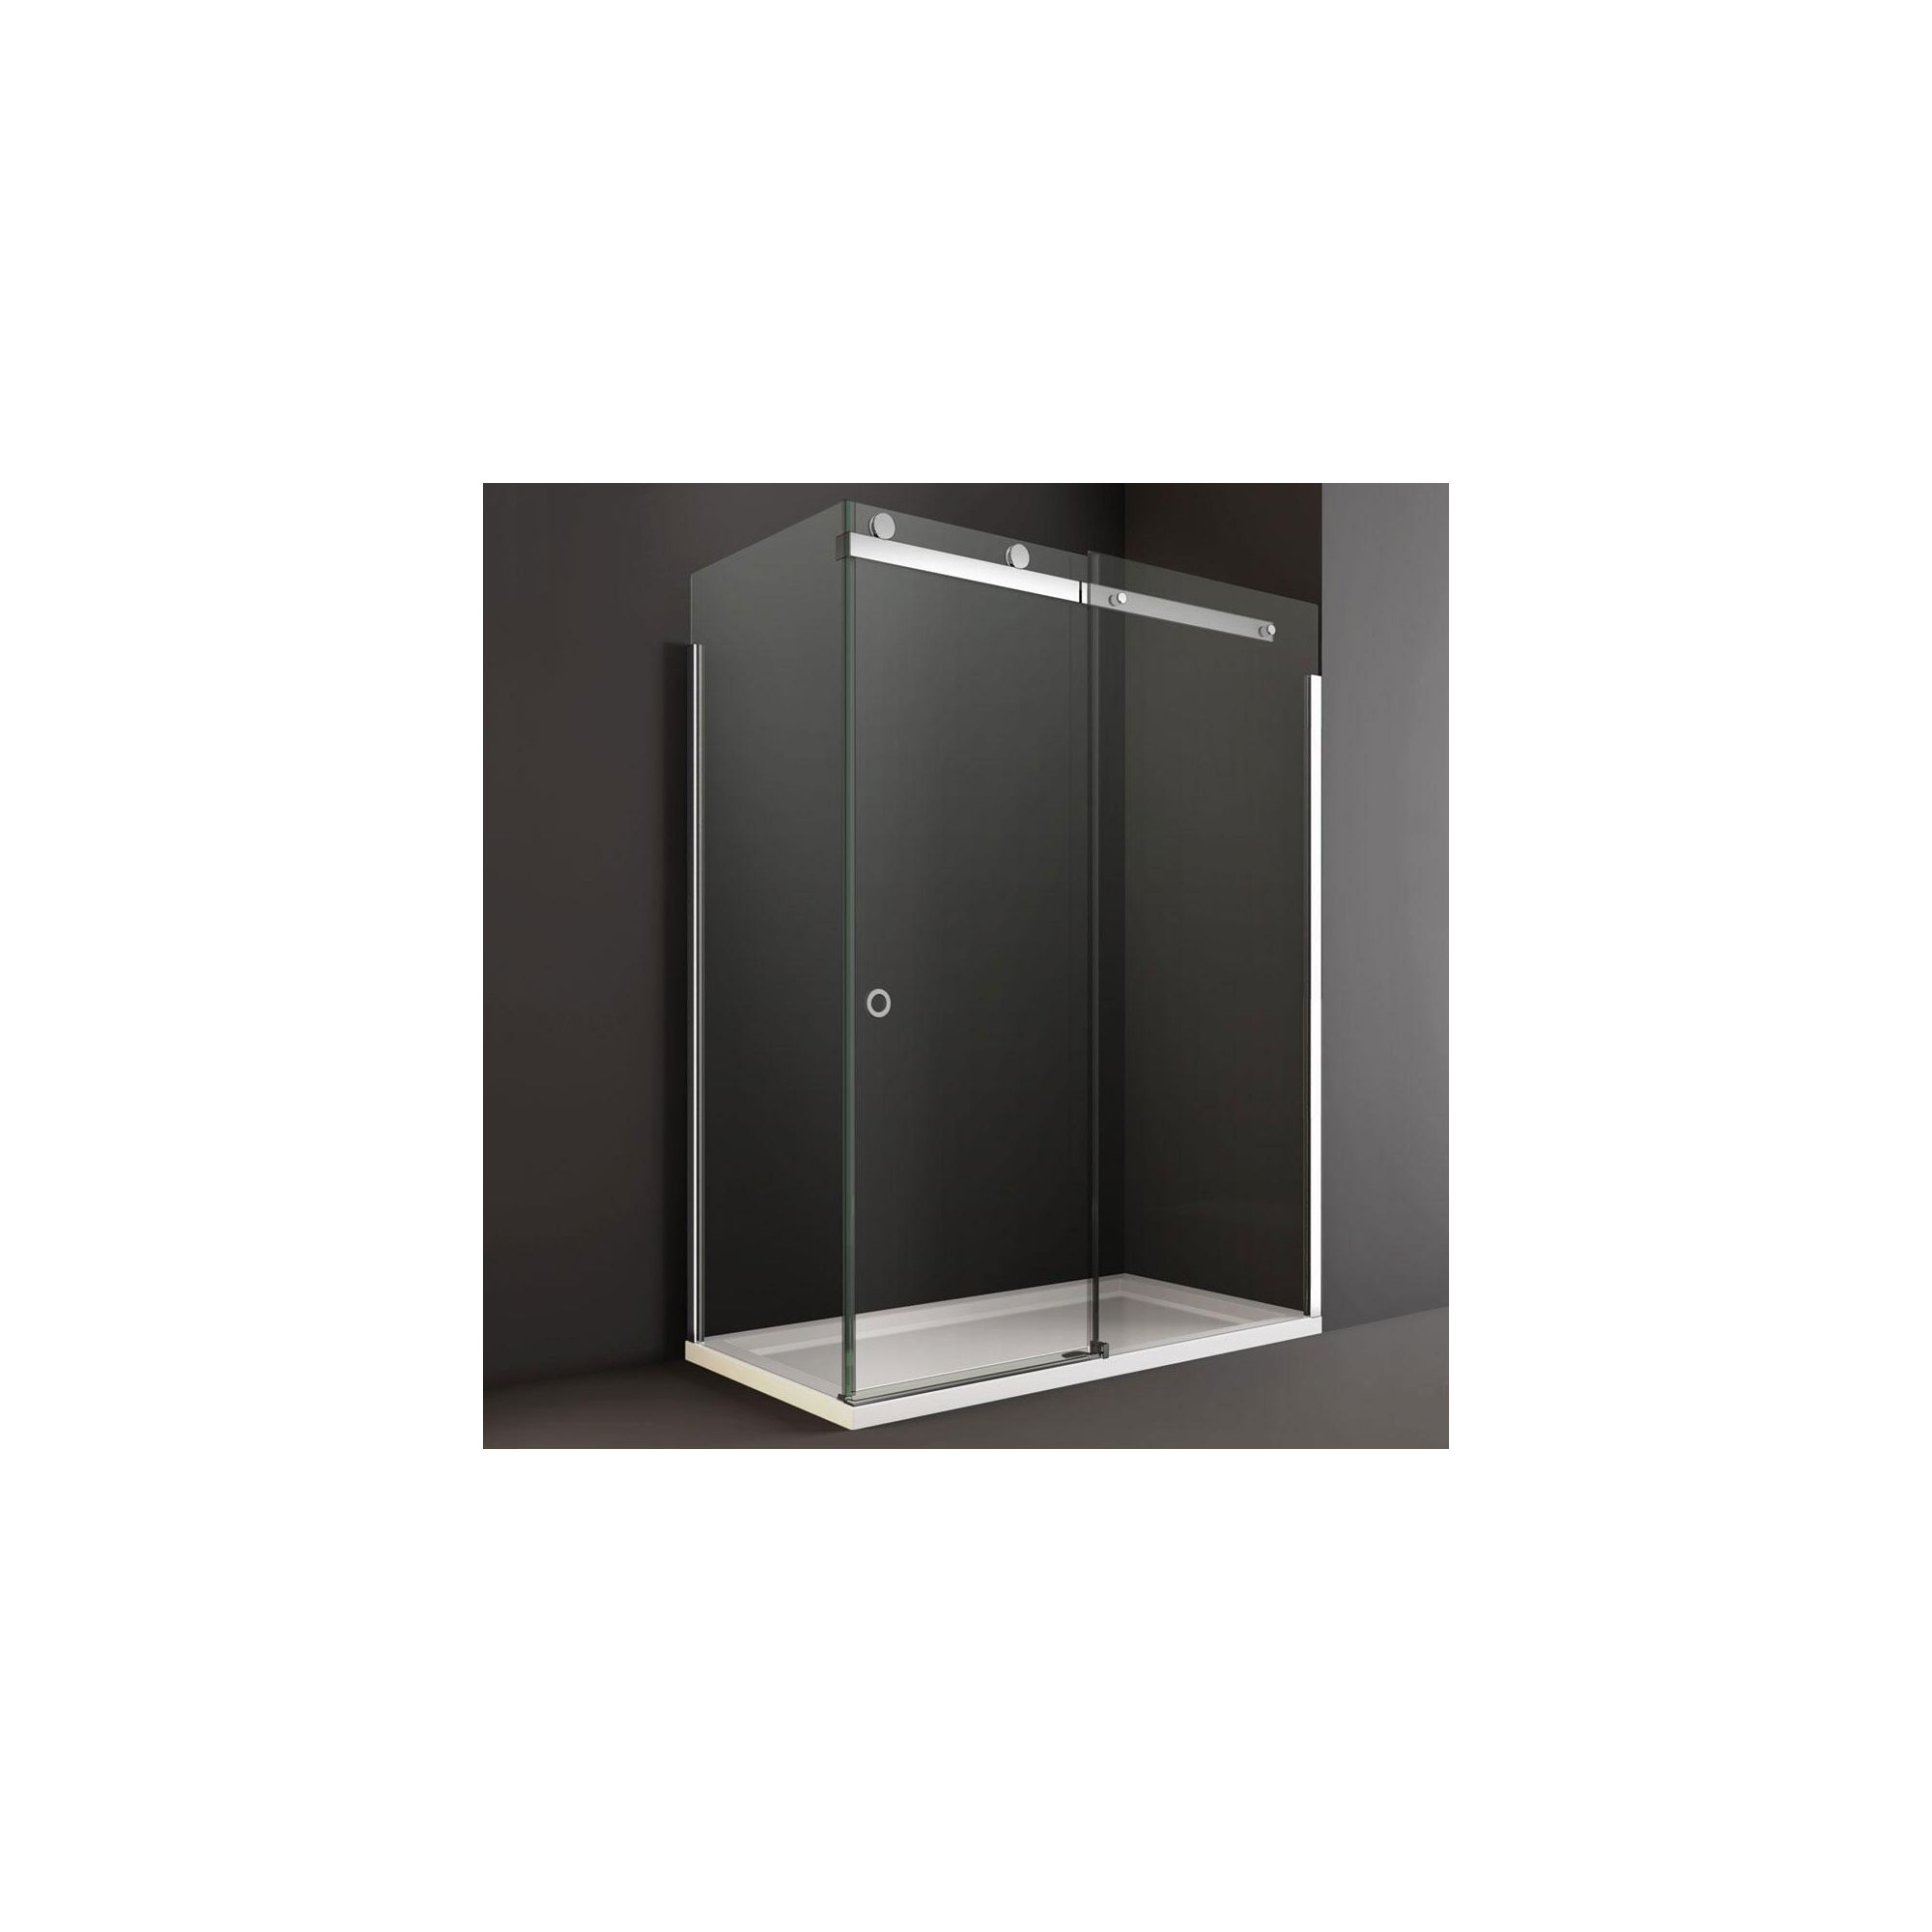 Merlyn Series 10 Sliding Shower Door, 1600mm Wide, 10mm Clear Glass, Right Handed at Tesco Direct